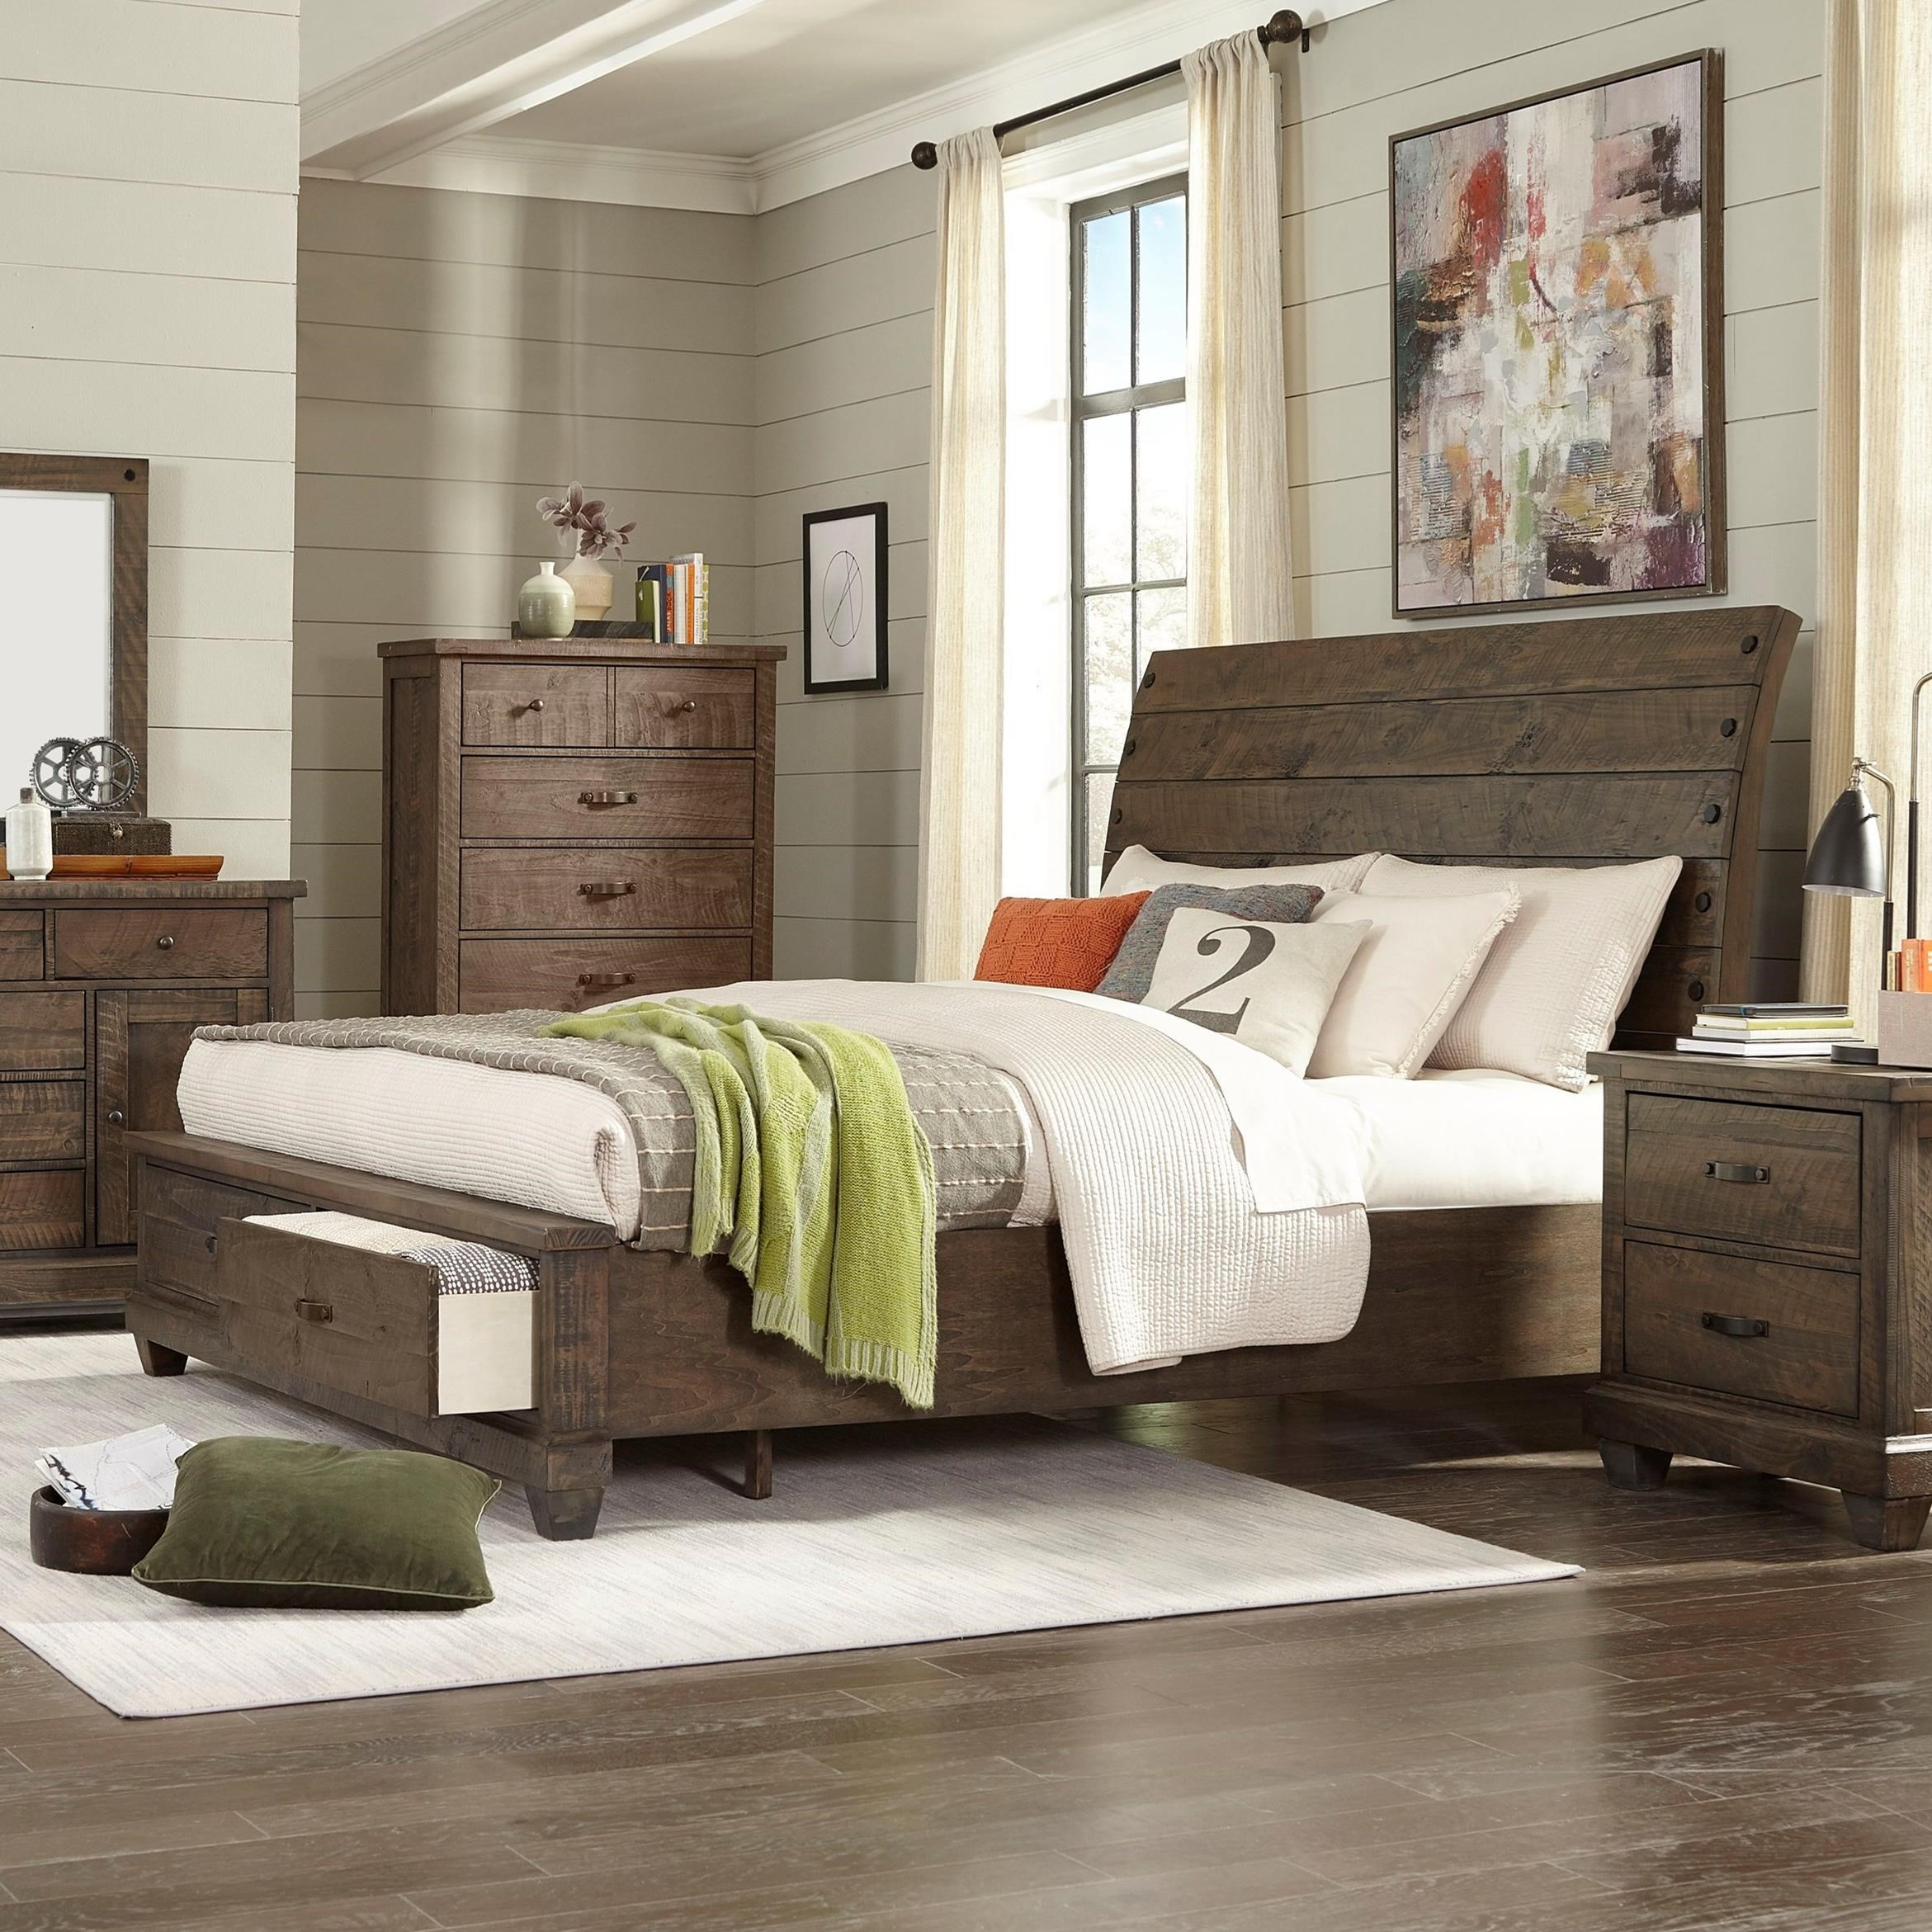 C7131A King Sleigh Bed by Lifestyle at Beck's Furniture